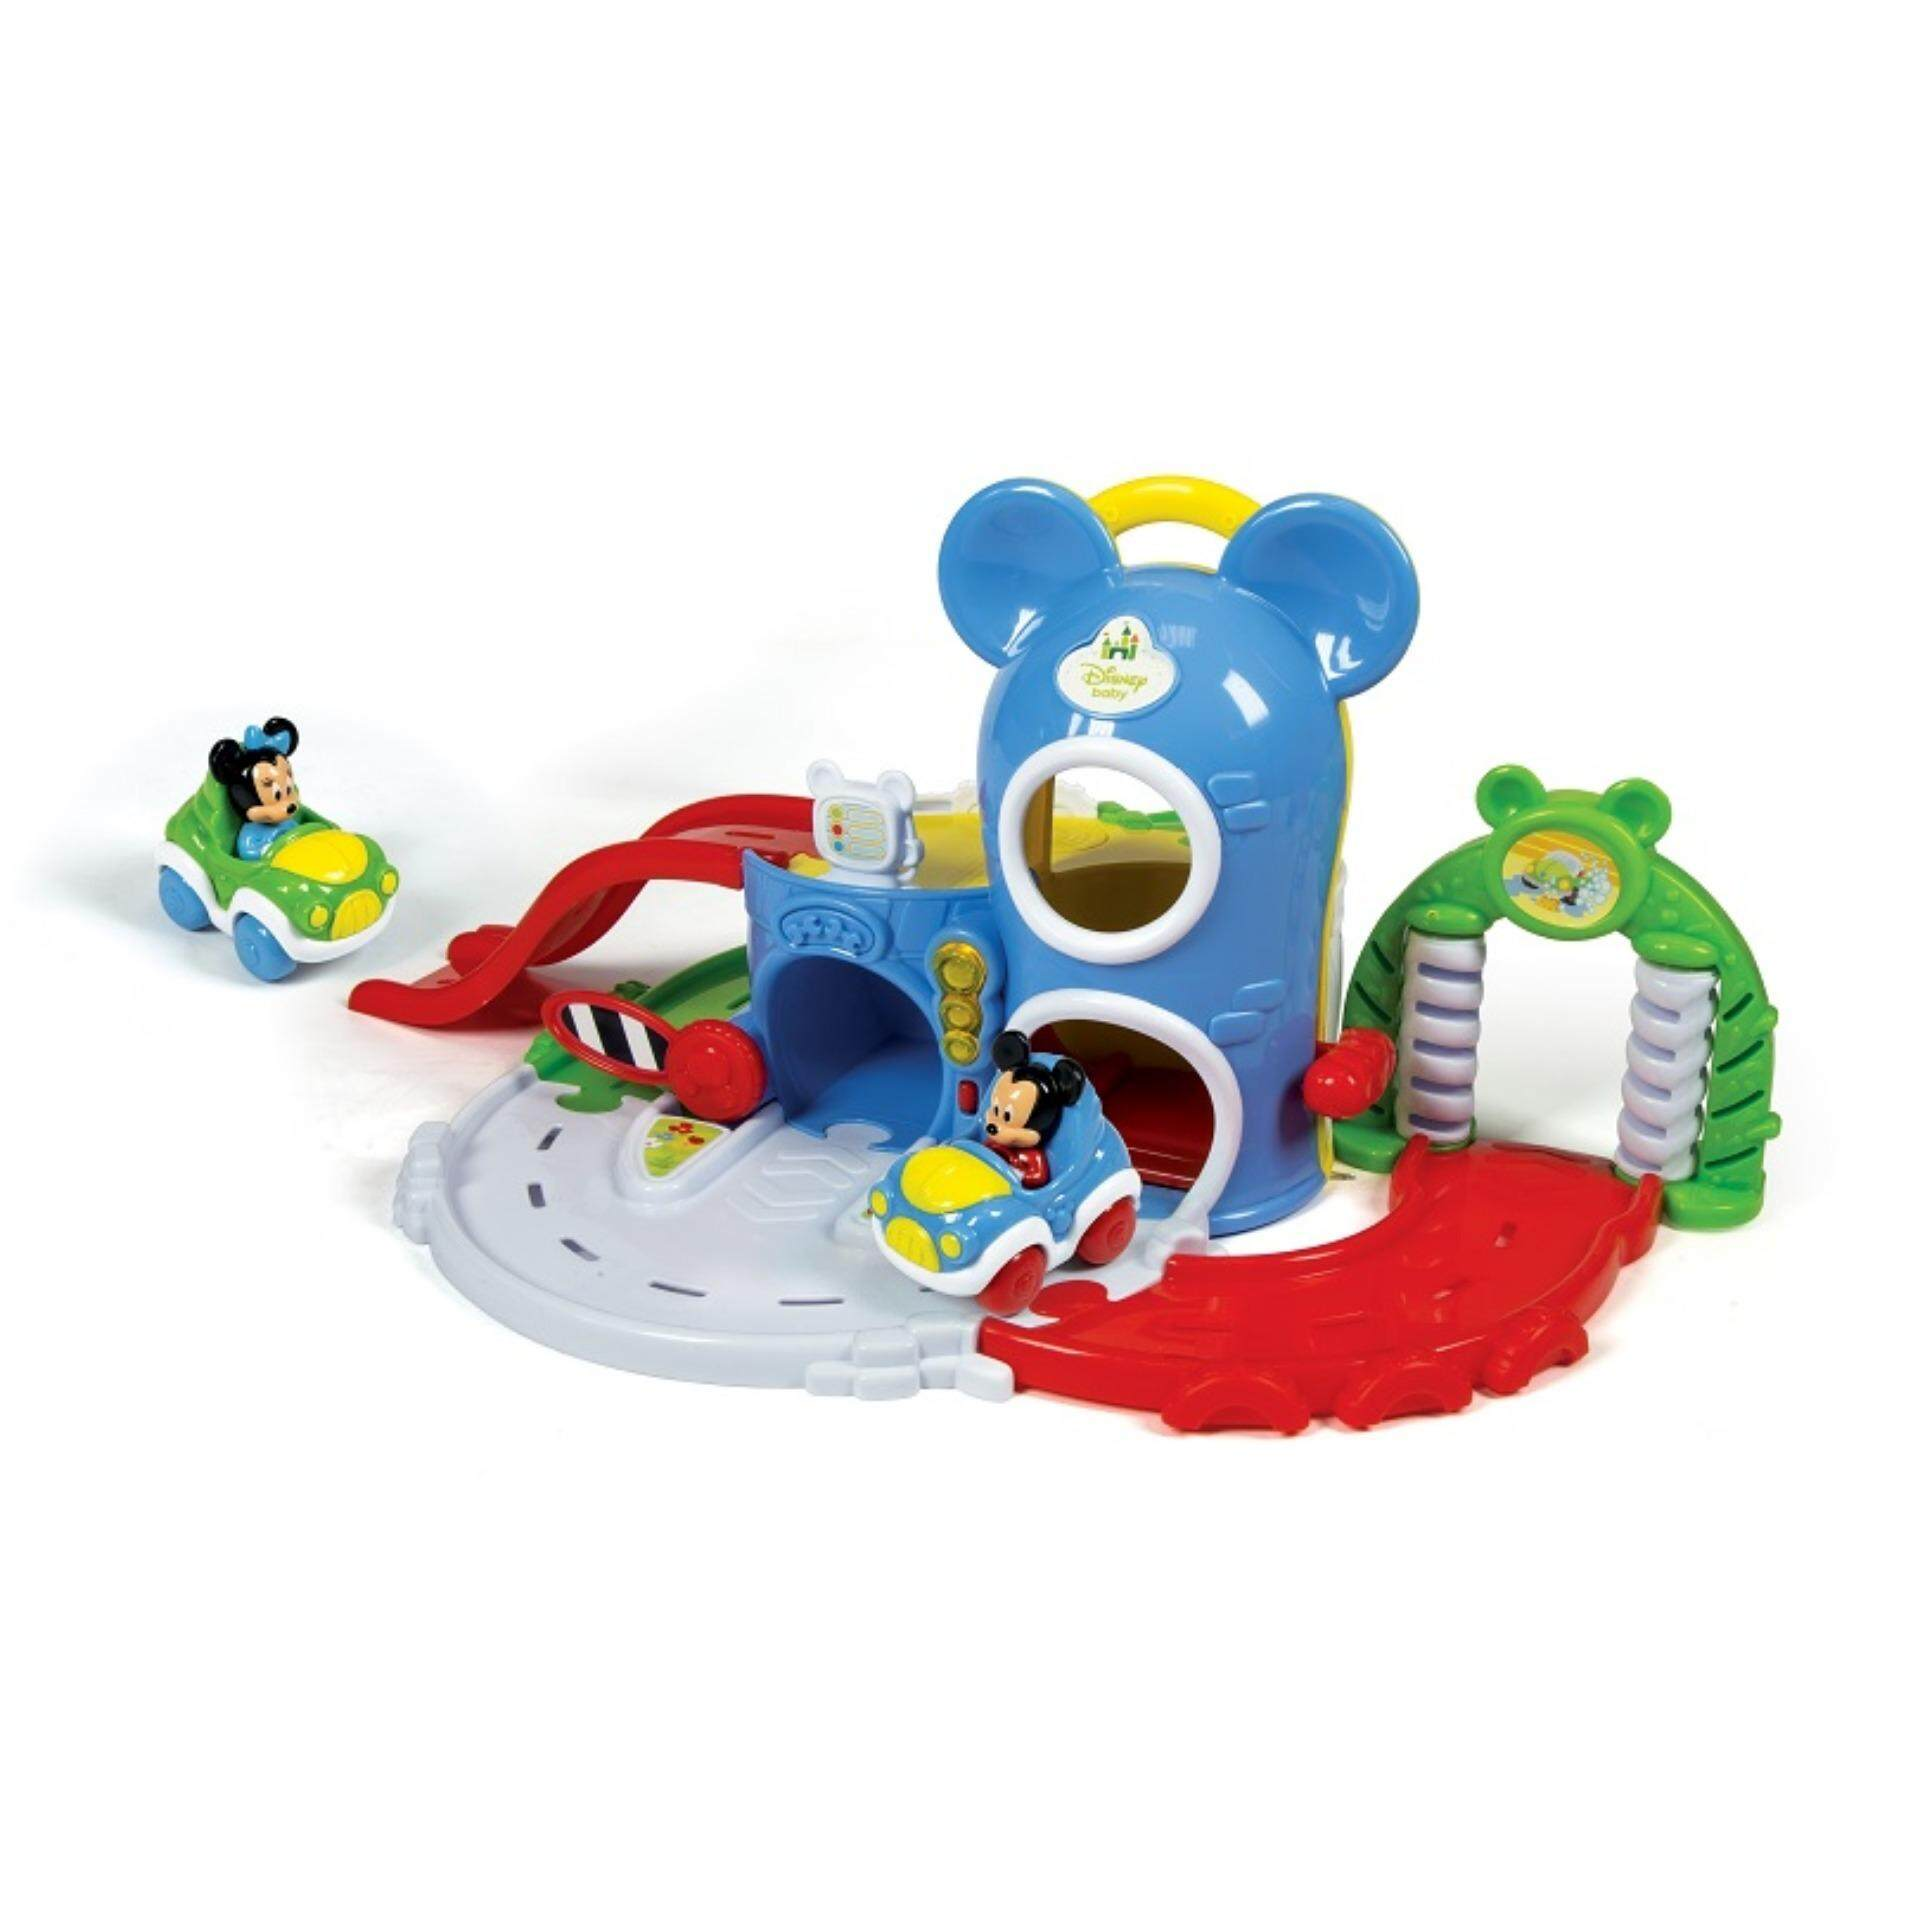 Disney Baby Developmental Activity Fun Garage Musical Toys - Mickey toys education